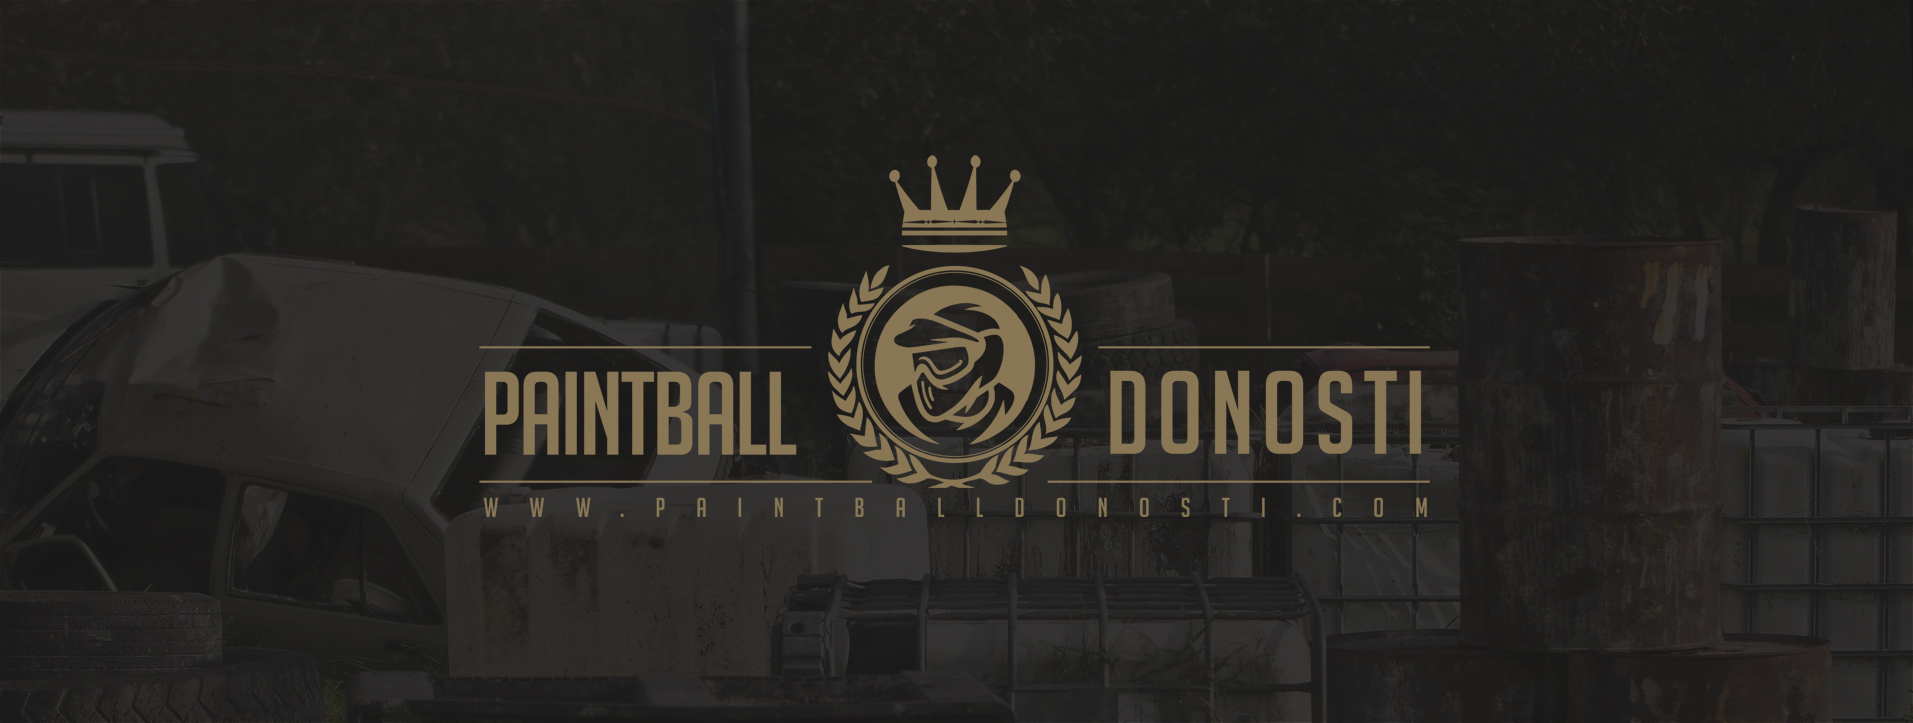 Paintball Donosti | Logotipo